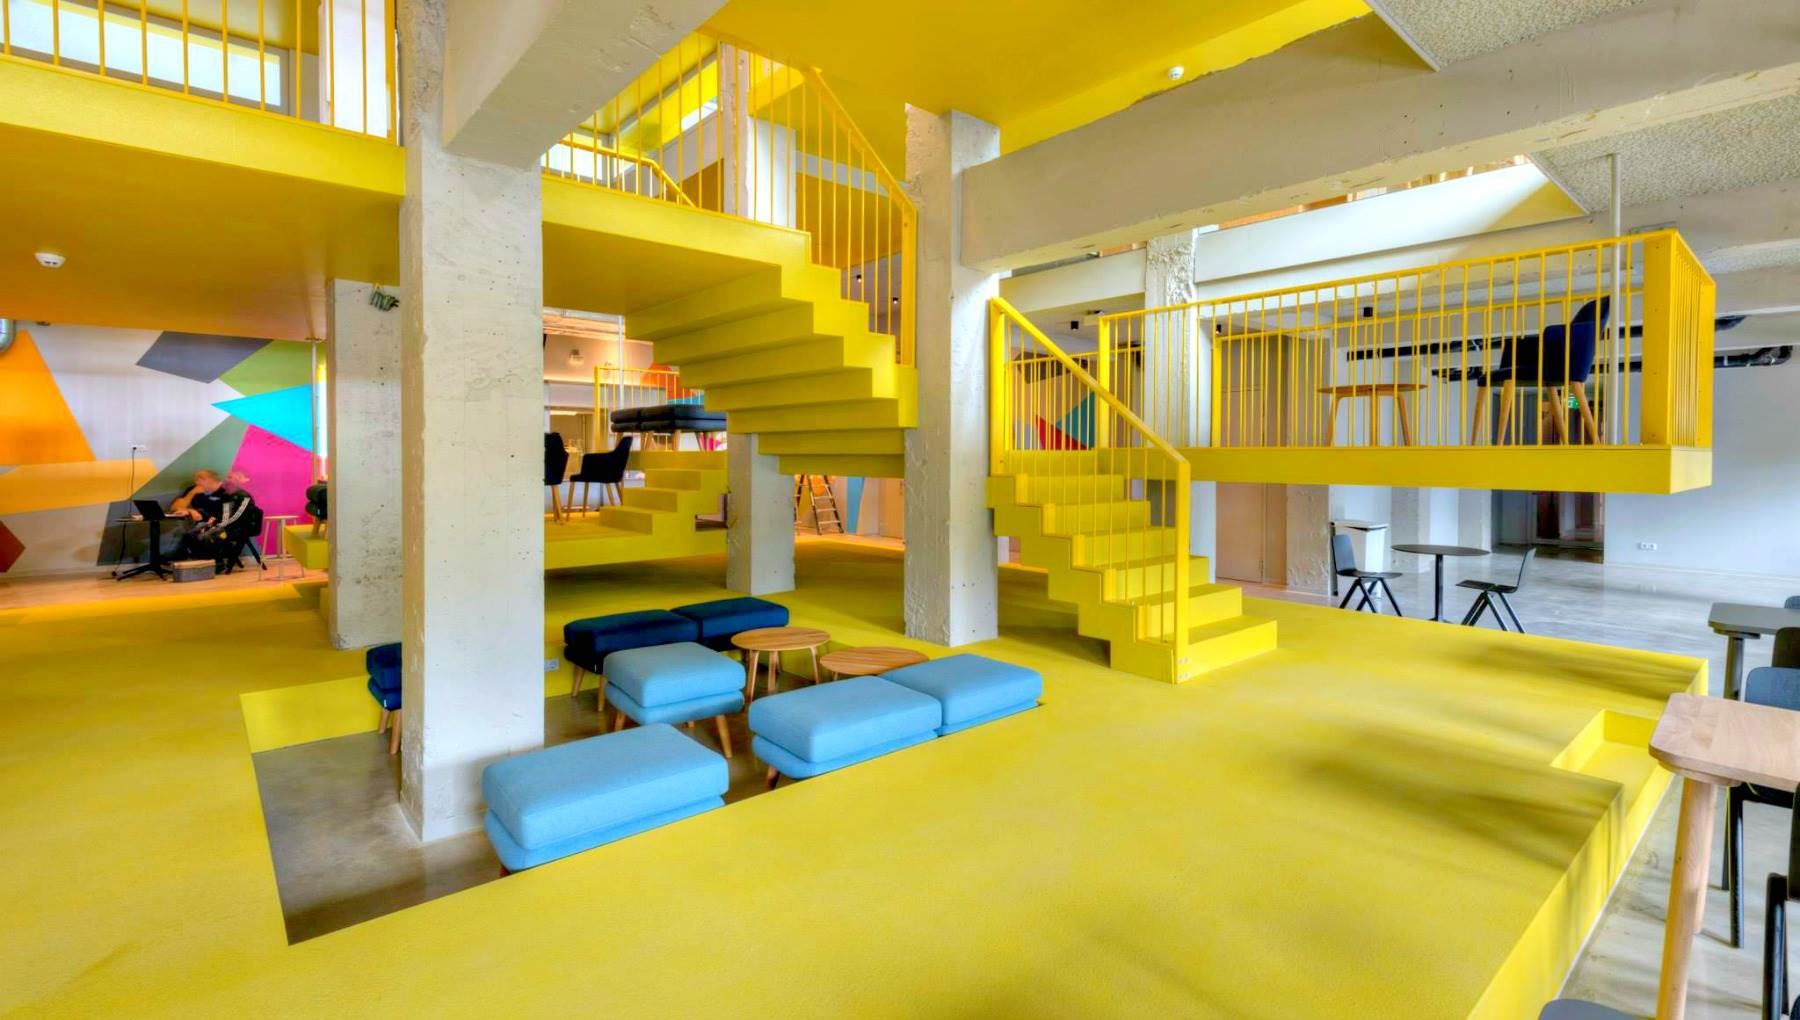 Image of stairwell at via Amsterdam hostel